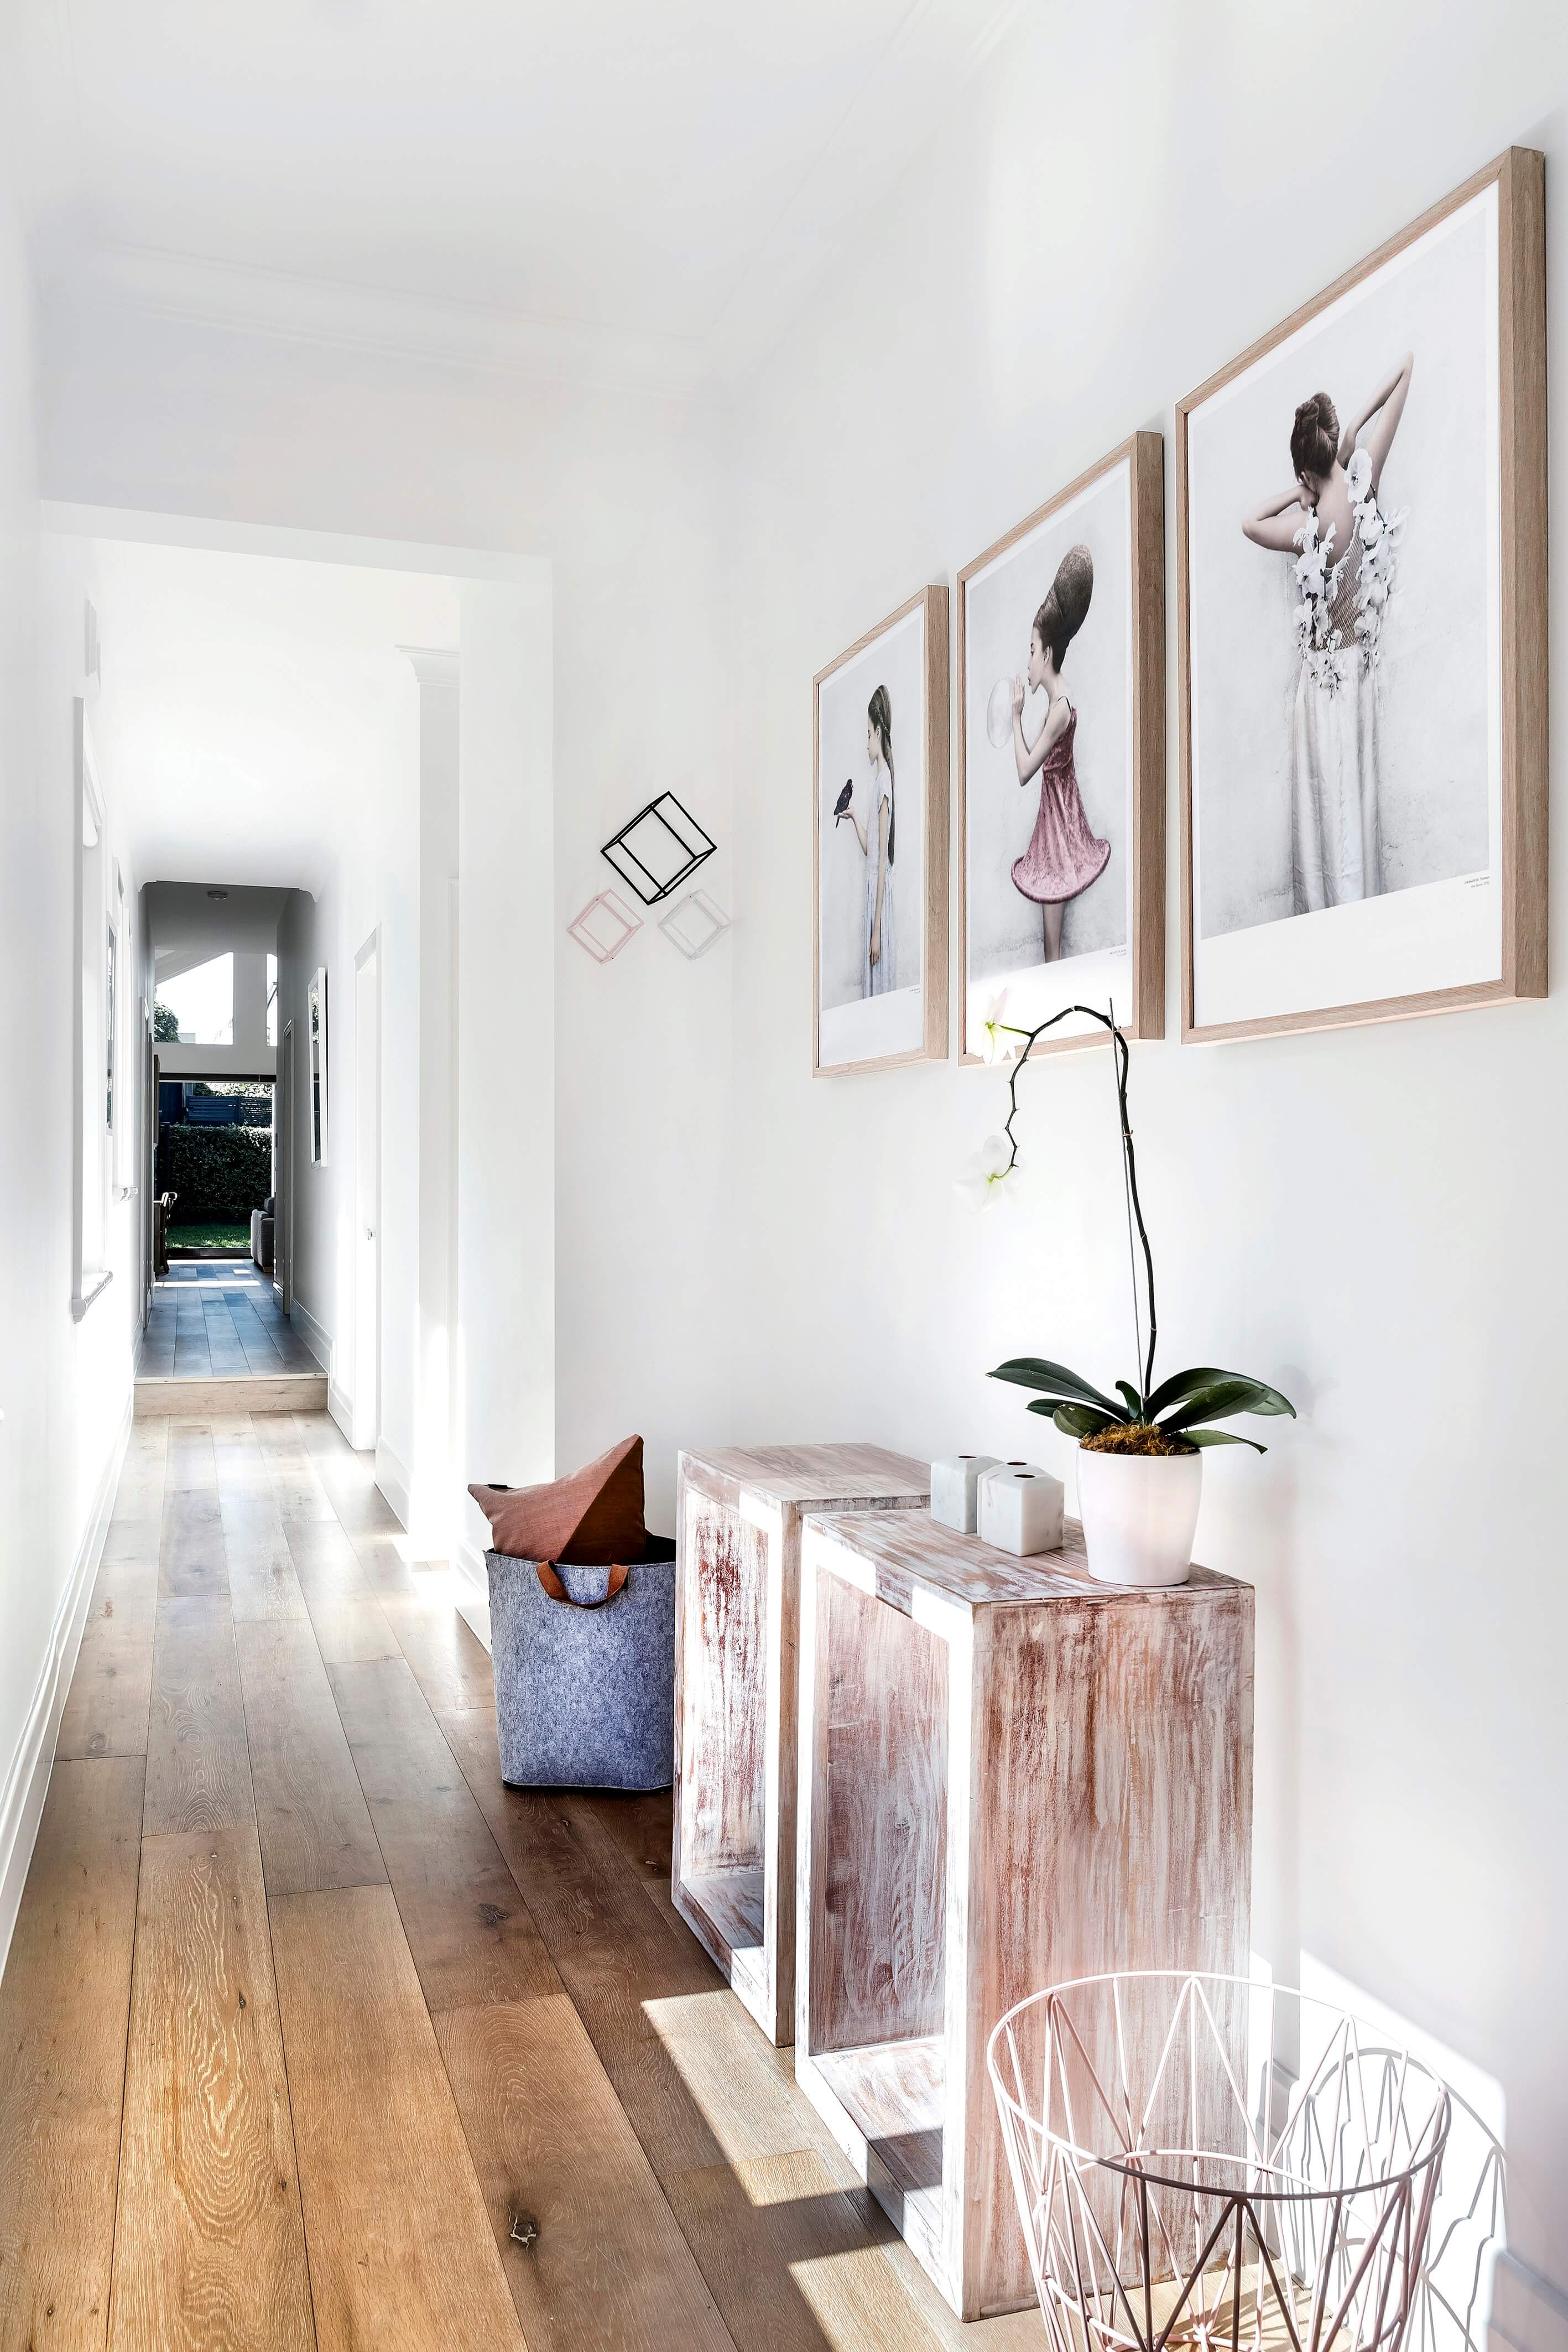 21 style ideas for your long, narrow hallway - WeLoveHome